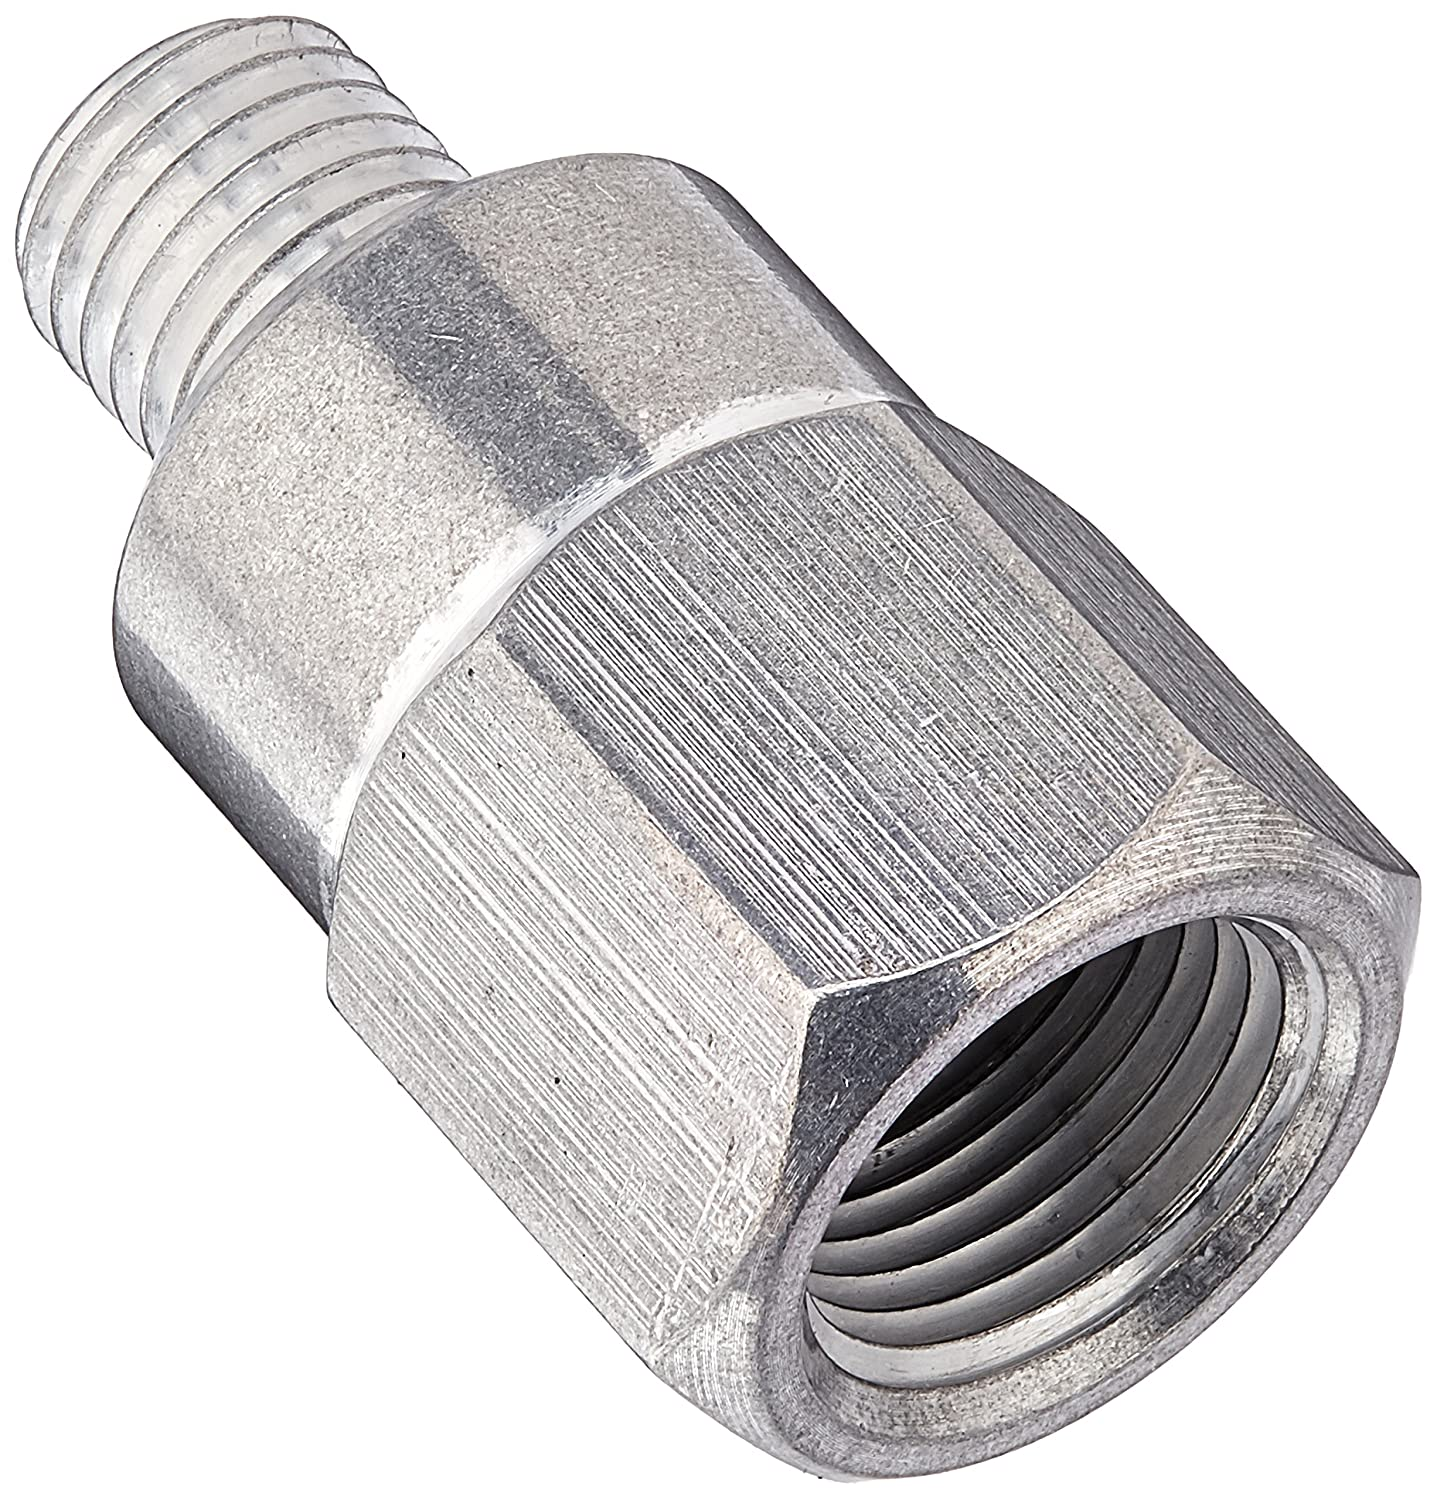 LS Engine Swap M12 1.5 Adapter to 3/8 NPT Coolant Temperature Sensor Water LS1 LSX LS3, 179 ICT Billet FBA_551179